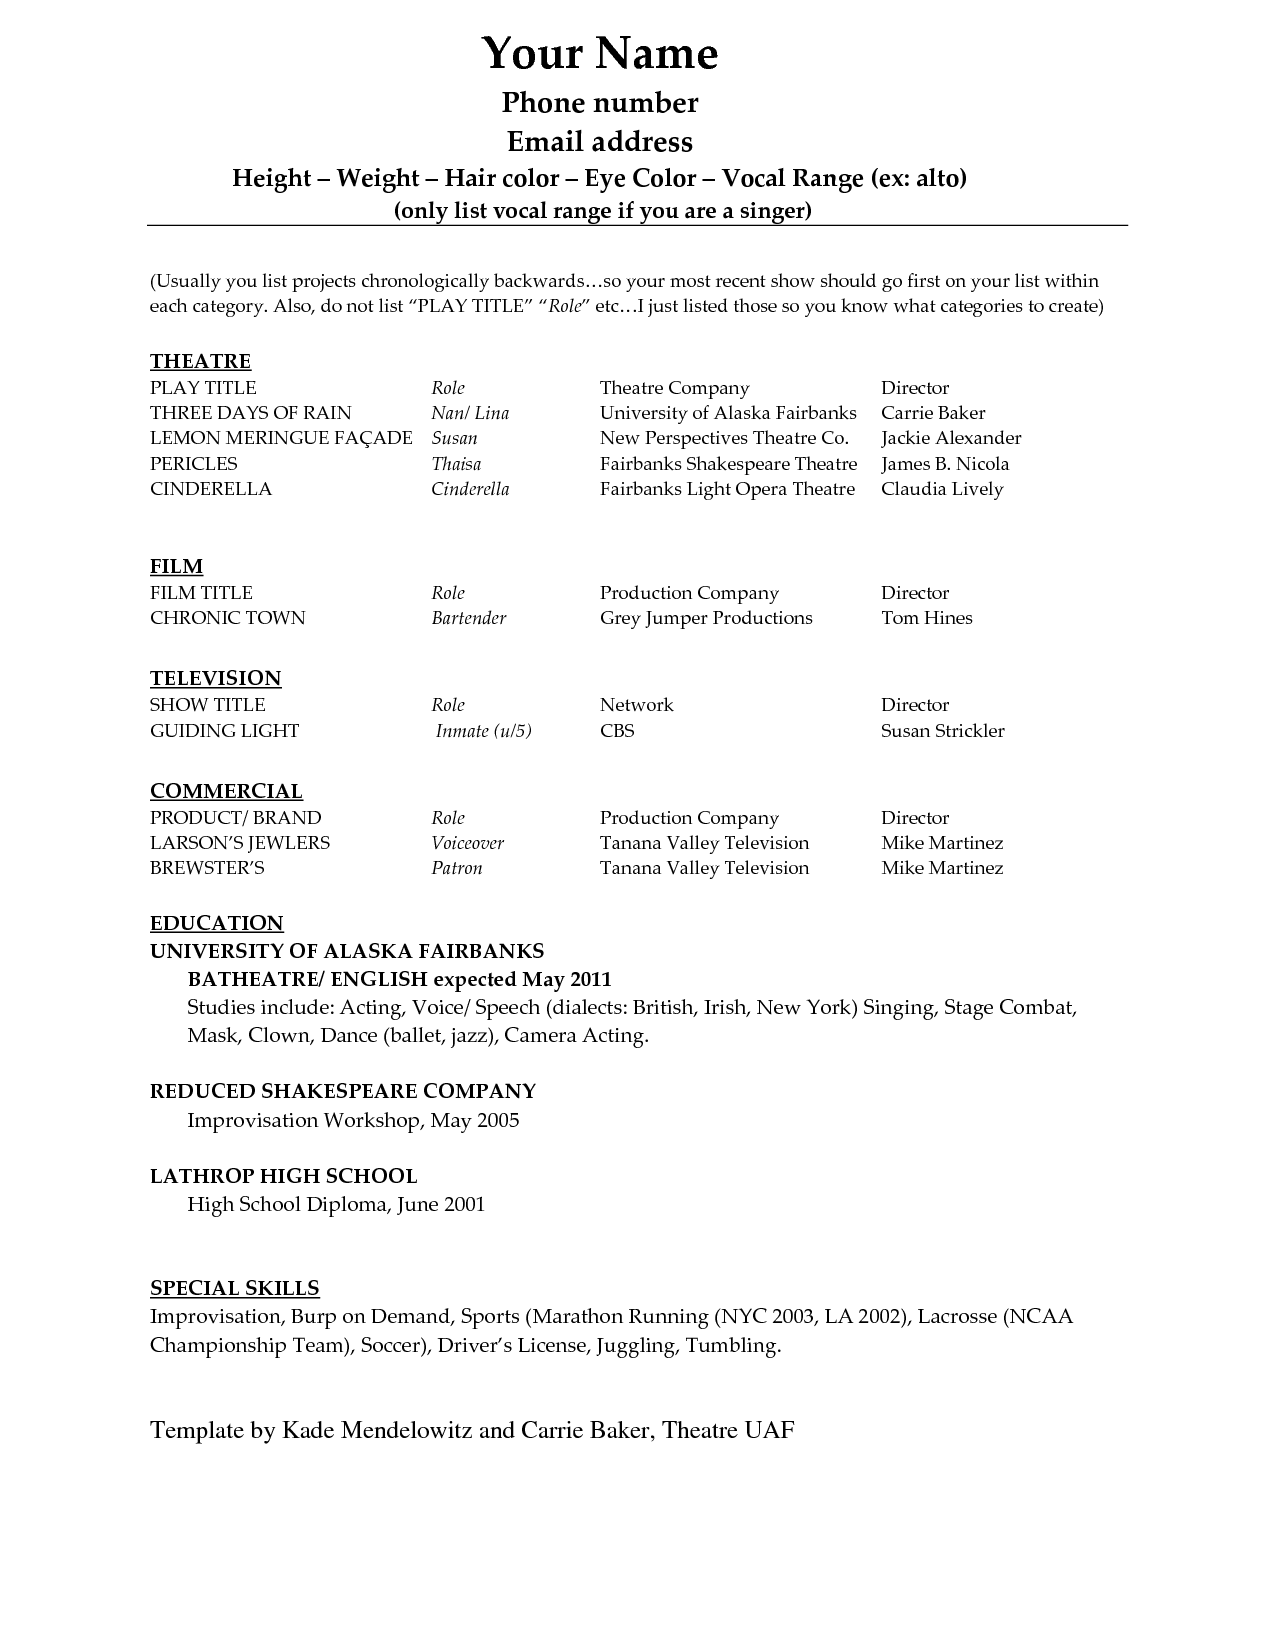 Charming Acting Resume Template Download Free   Http://www.resumecareer.info/acting  Resume Template Download Free 19/